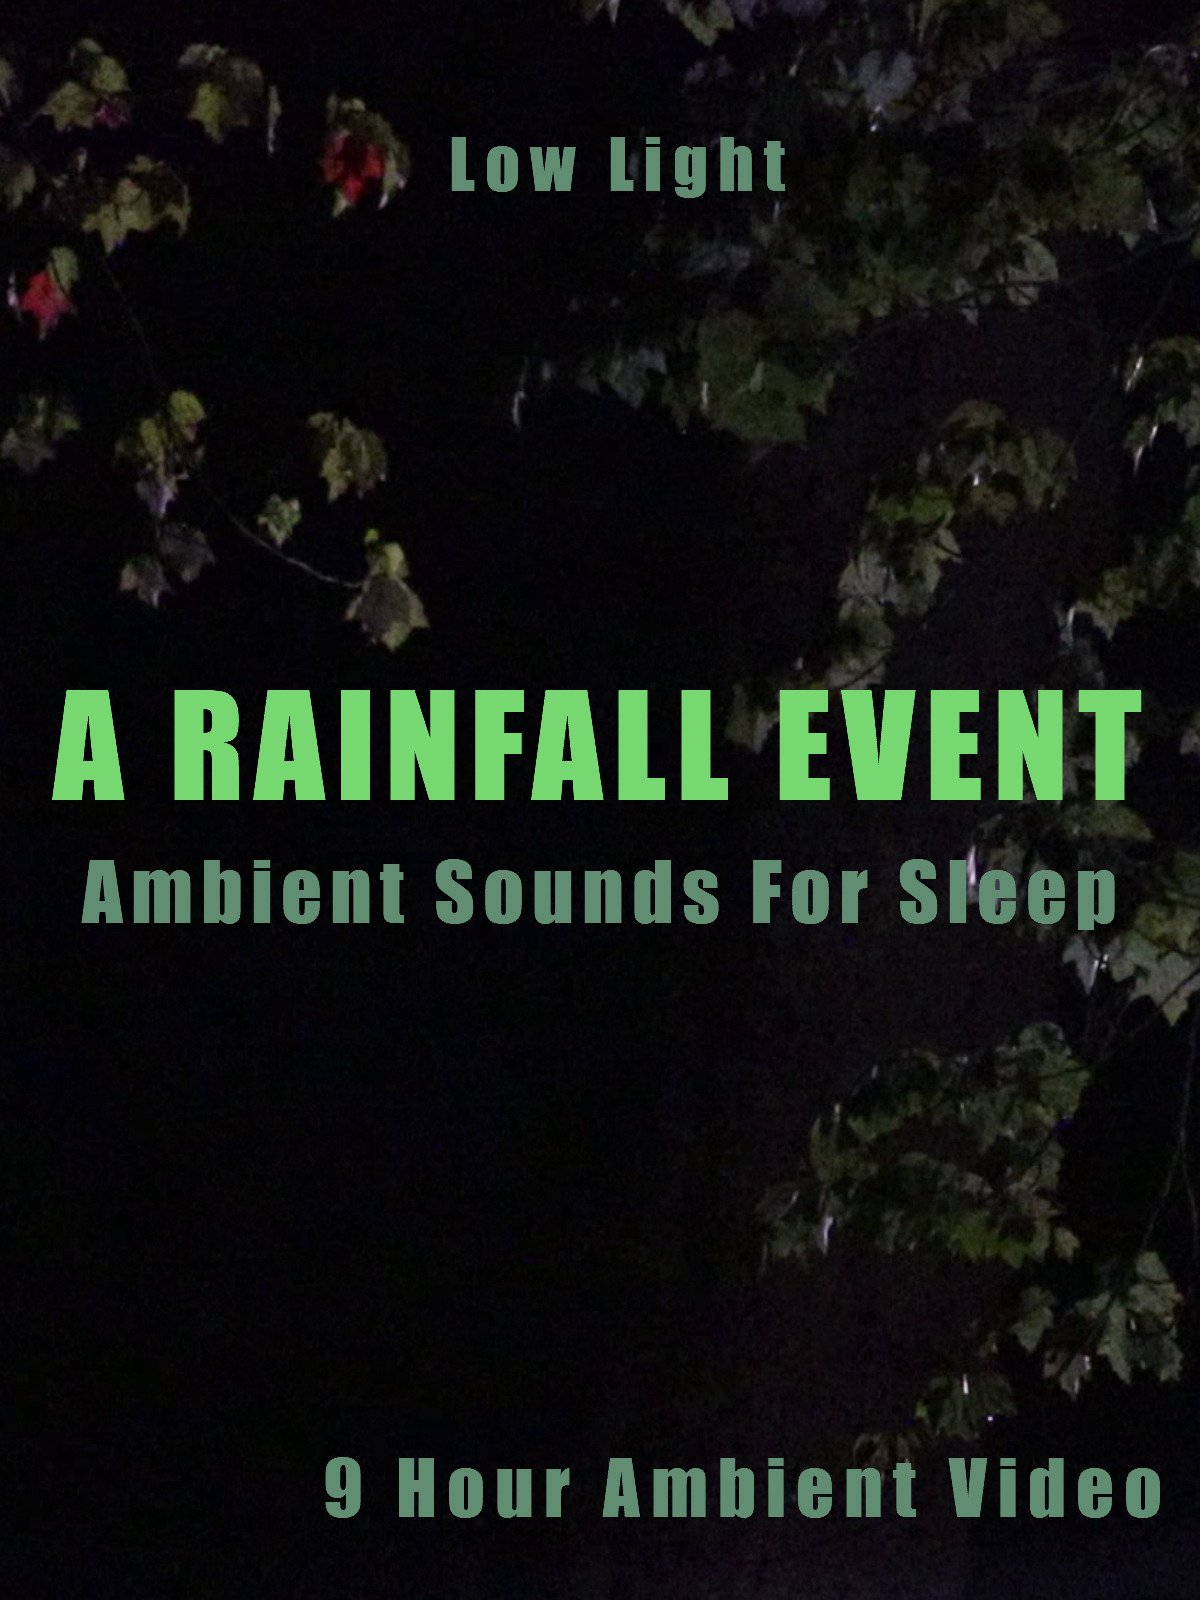 A Rainfall Event Ambient Sounds For Sleep